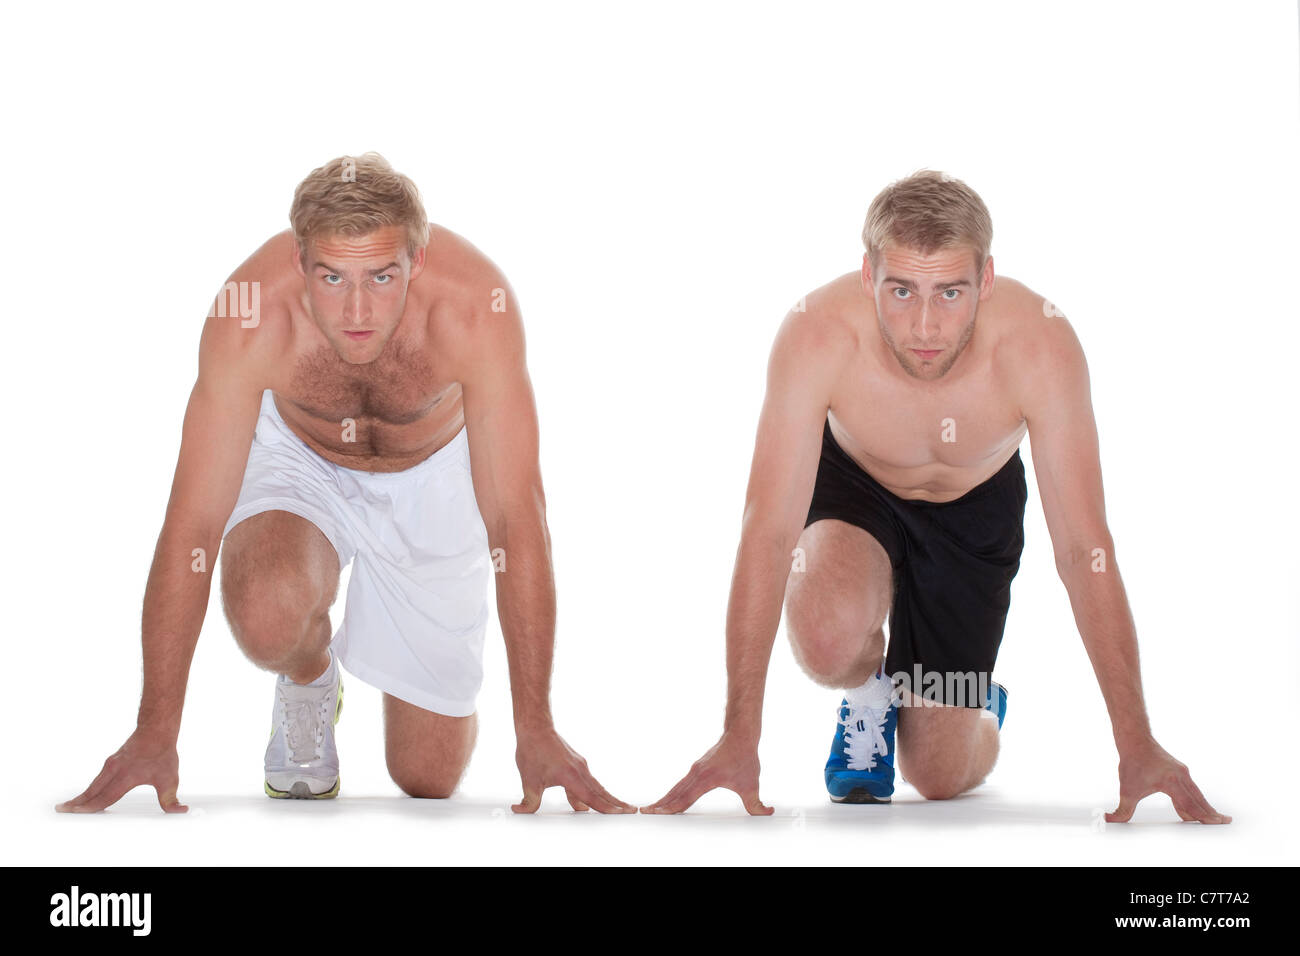 two sprinters getting ready to start the race - isolated on white - Stock Image